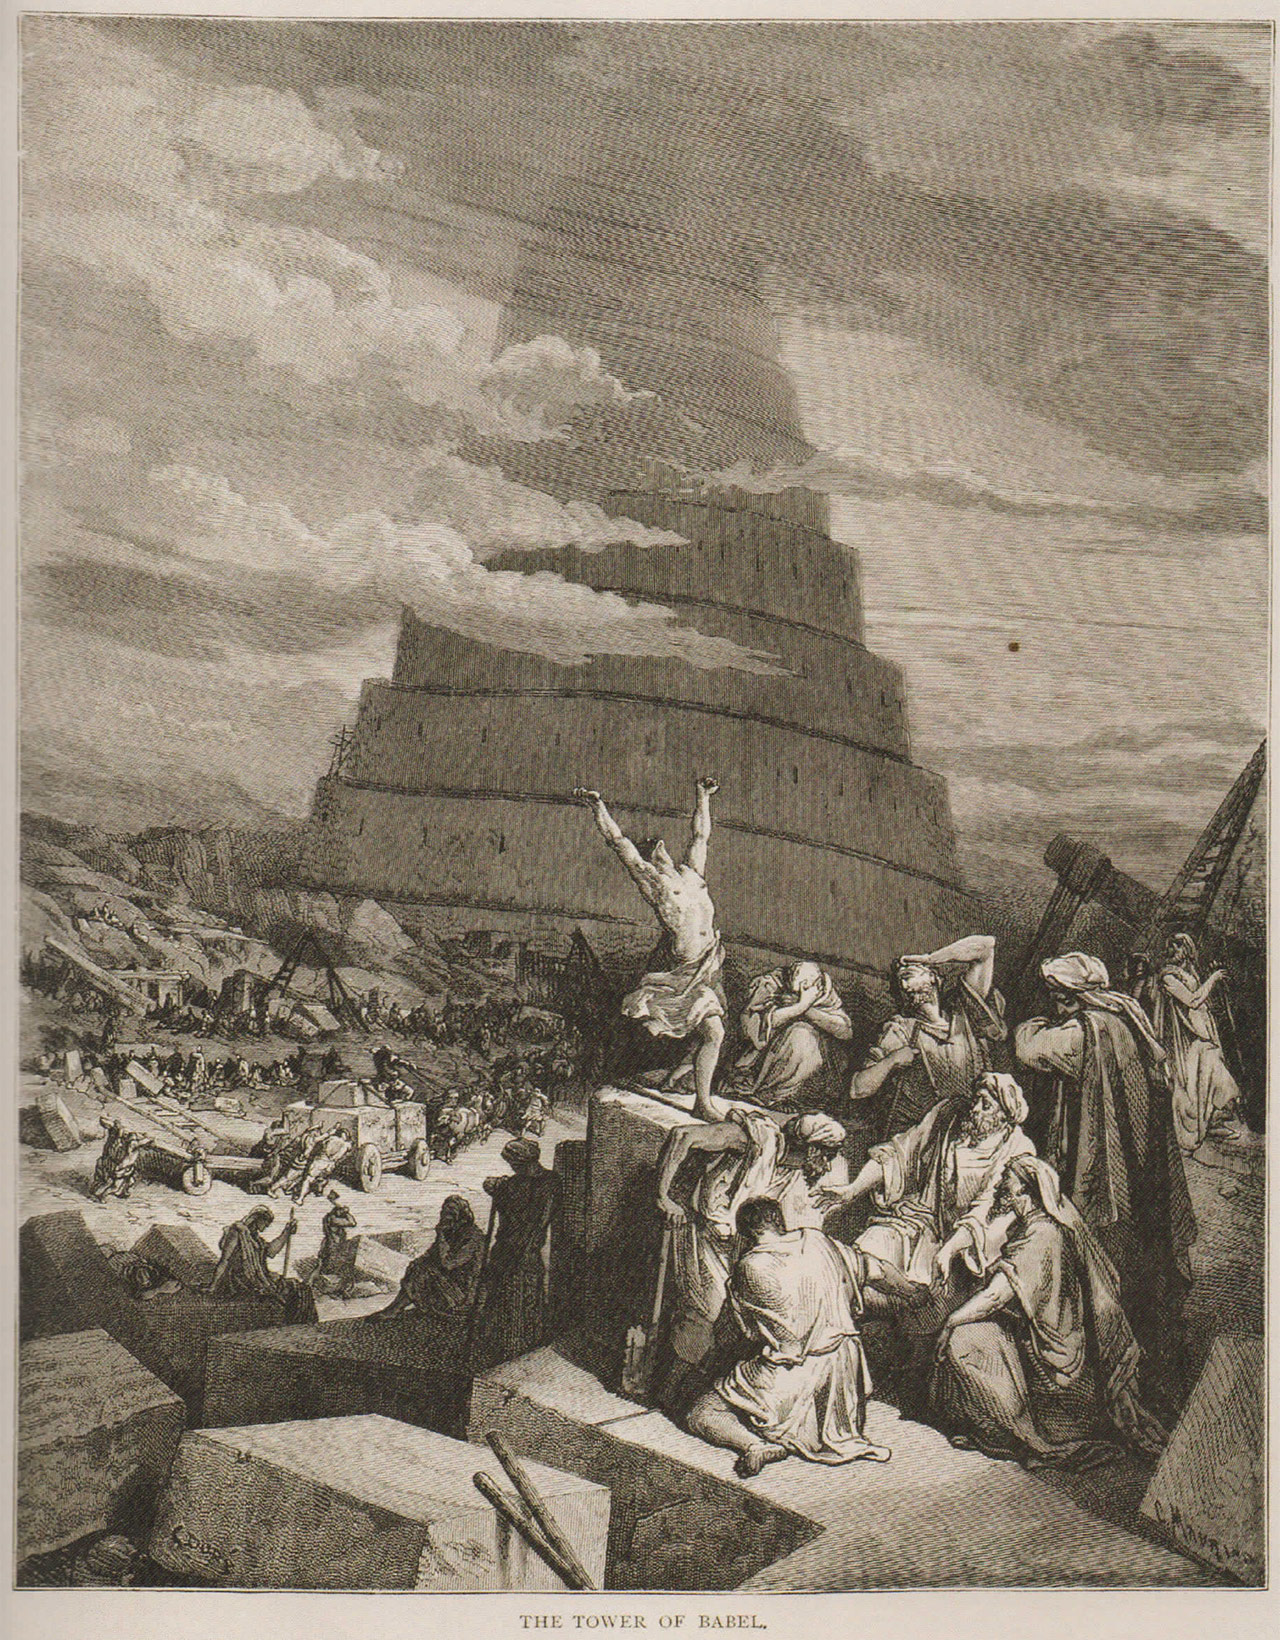 """Gustave Doré, """"The Tower of Babel"""" (1880), engraving, from 'Pride' at the Bruce Museum"""